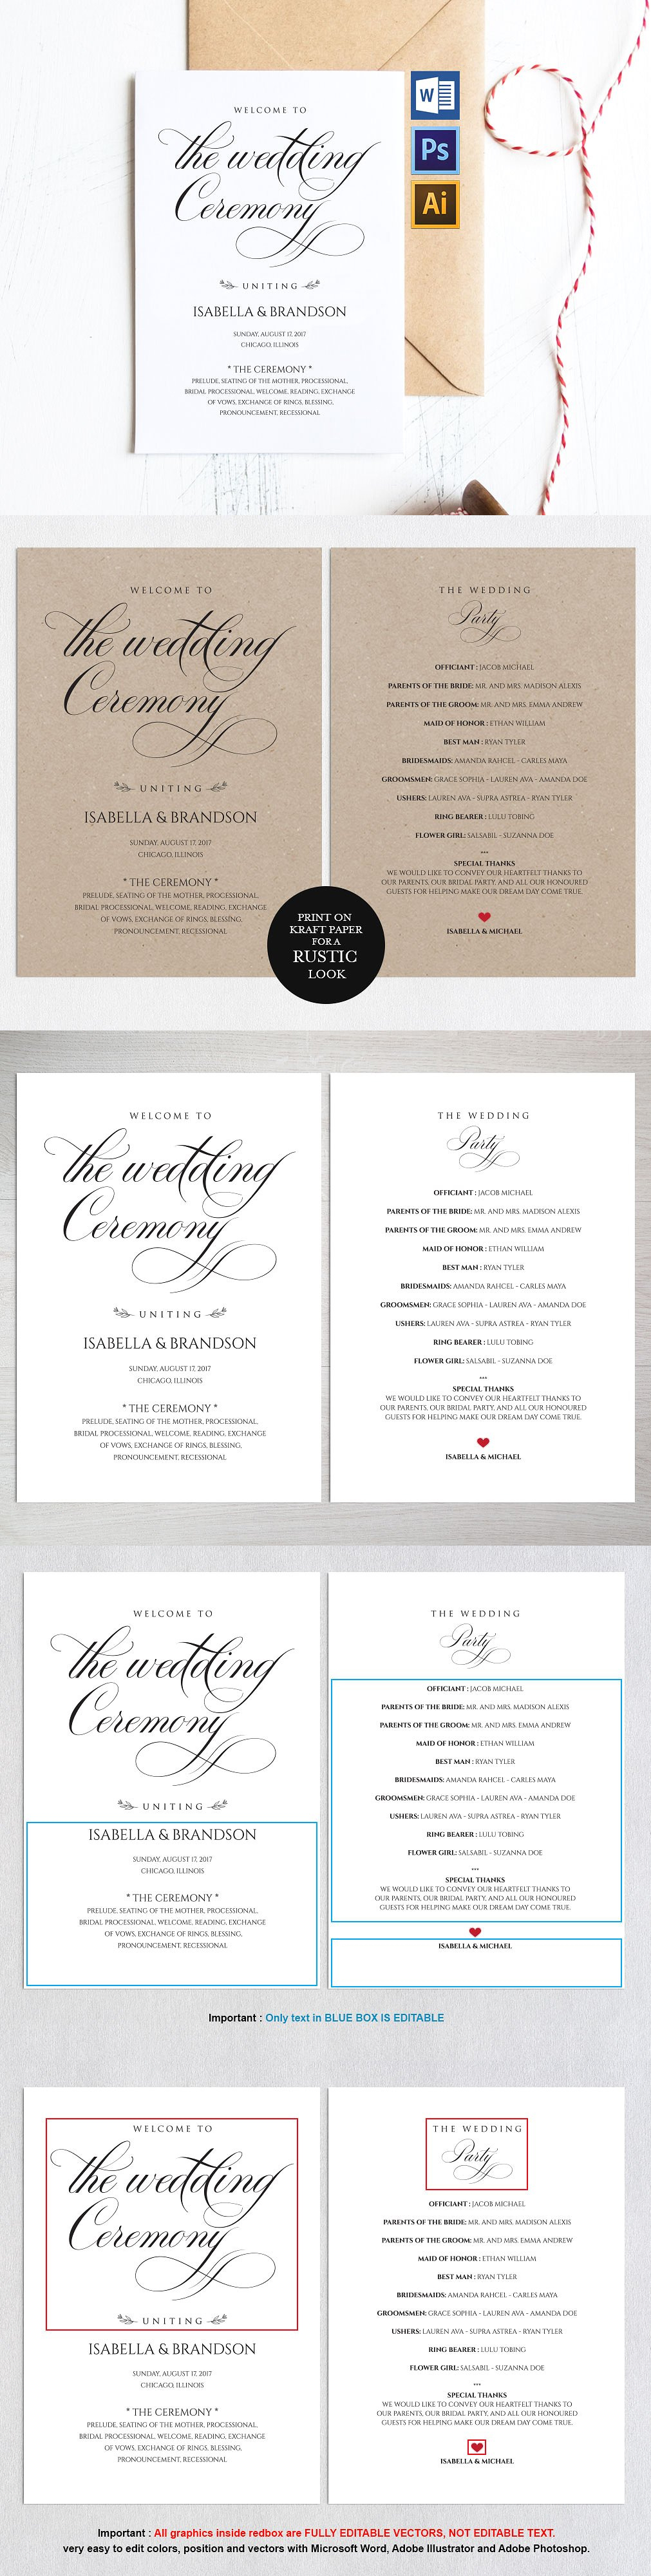 Wedding Program Wpc 123 | Wedding programmes, Template and Adobe ...